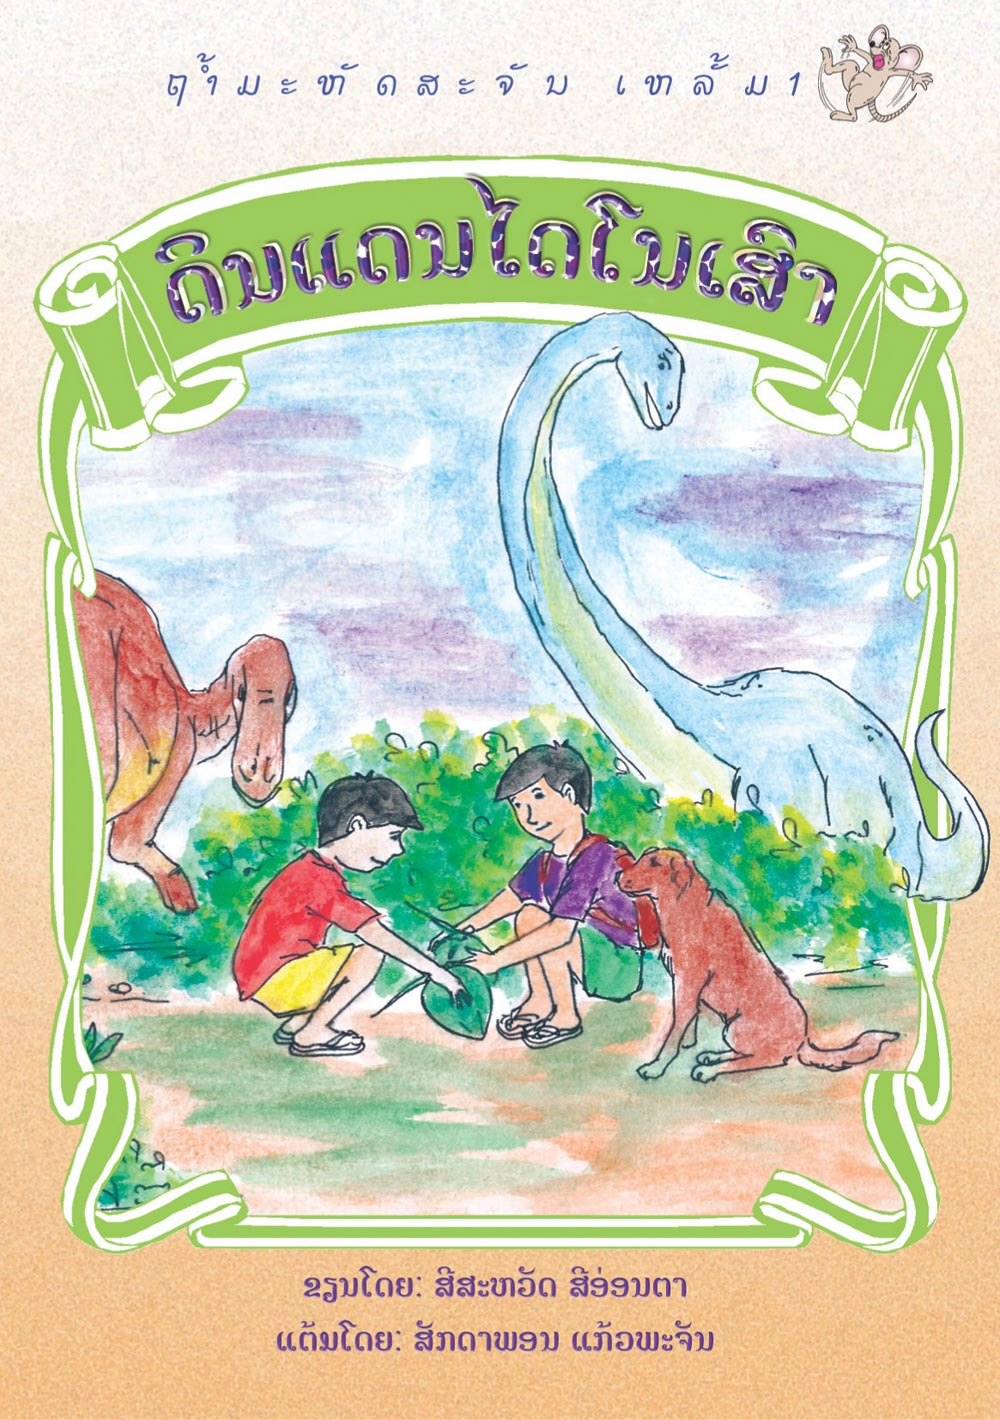 In the Land of Dinosaurs large book cover, published in Lao language